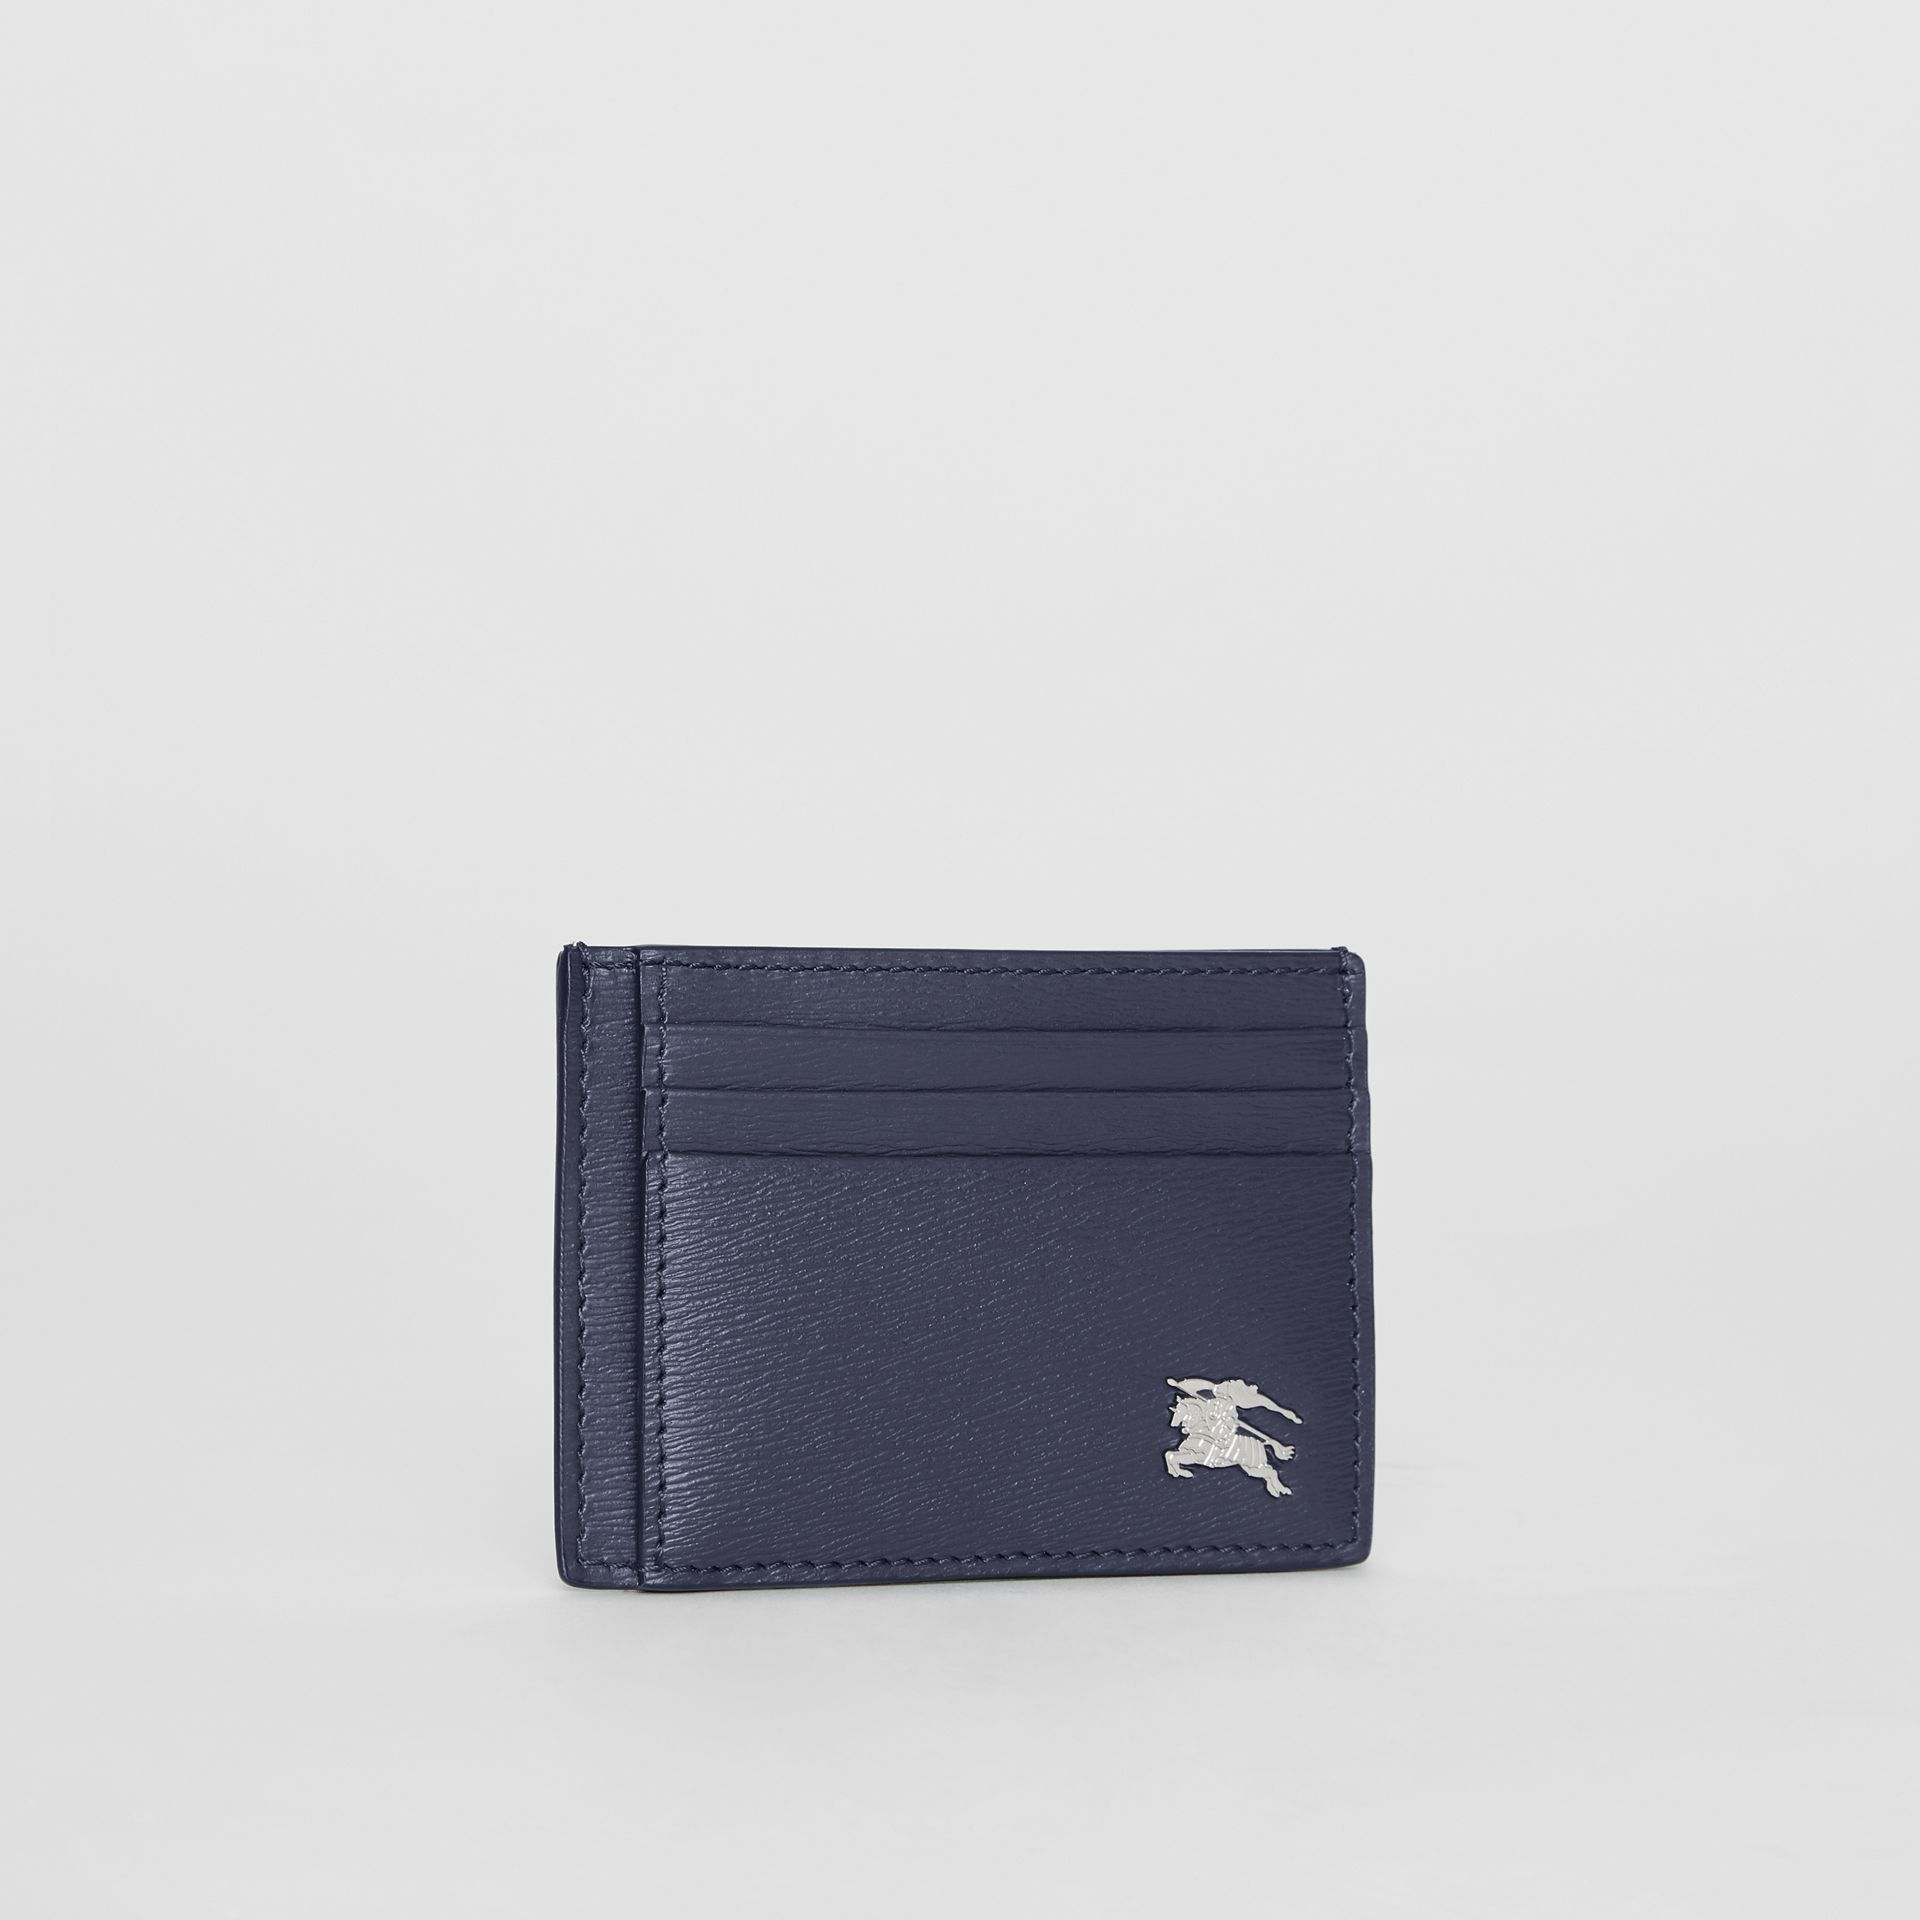 Grainy Leather Card Case in Navy - Men | Burberry Australia - gallery image 3